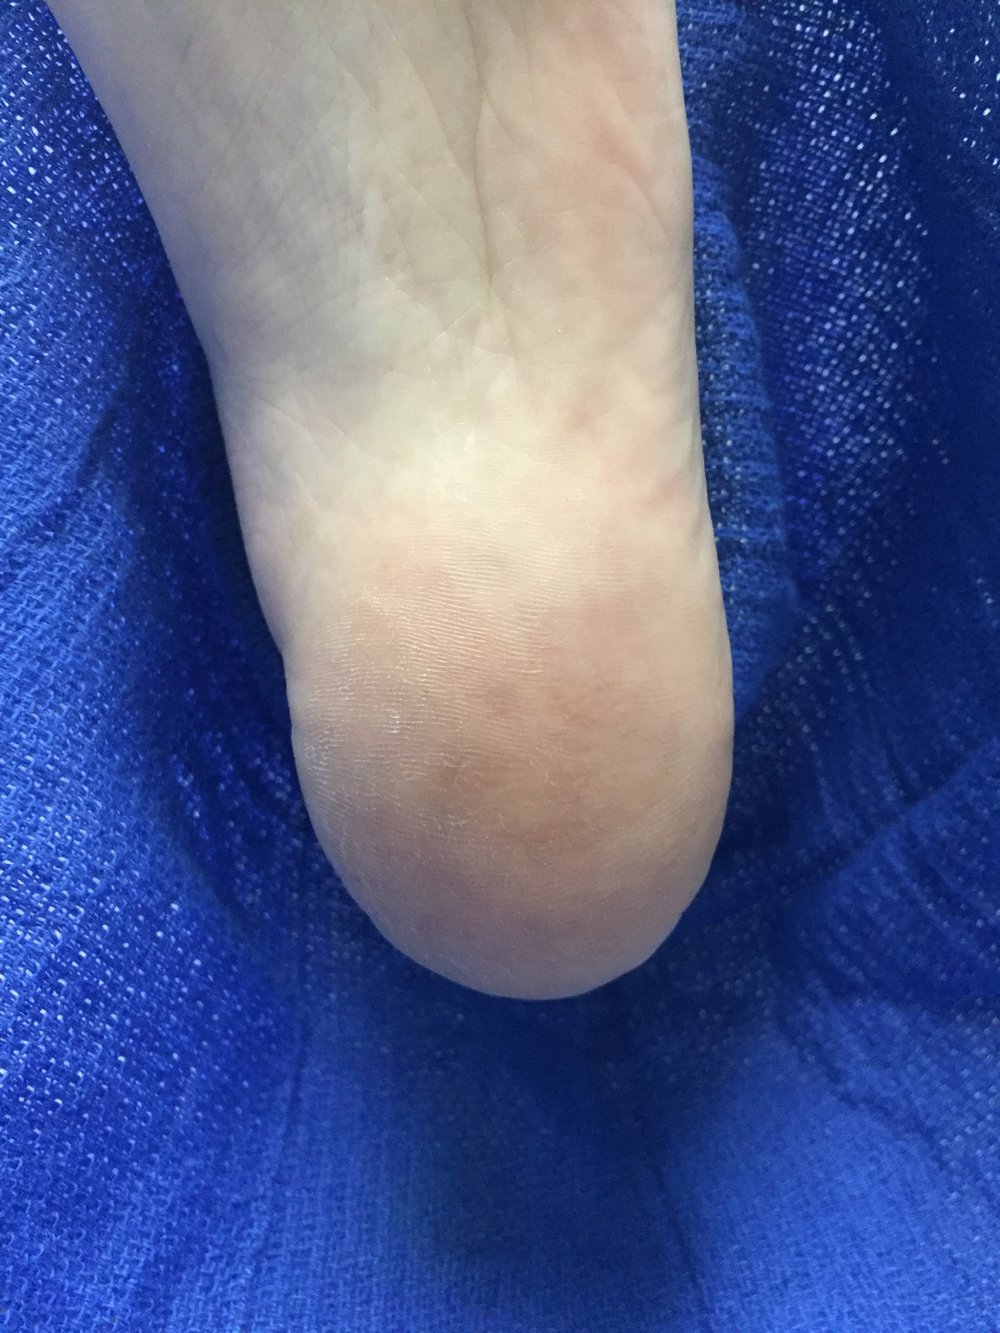 This is our patient on visit 4. A final laser treatment was administered to ensure all warty tissue was killed. It has been 2 years and the warts have not returned. Call us today 878-313-3338 to schedule at any of our four Podiatry Clinics in Beaver, Butler, or Allegheny County locations, including Podiatry offices Moon Township, Ambridge, Cranberry Township's full service Podiatric office and our newest Foot Clinic, Beaver, PA Call now to talk to a foot care specialist 878-313-3338 ( FEET) Click Here to E-mail Dr. Christina Teimouri DPM